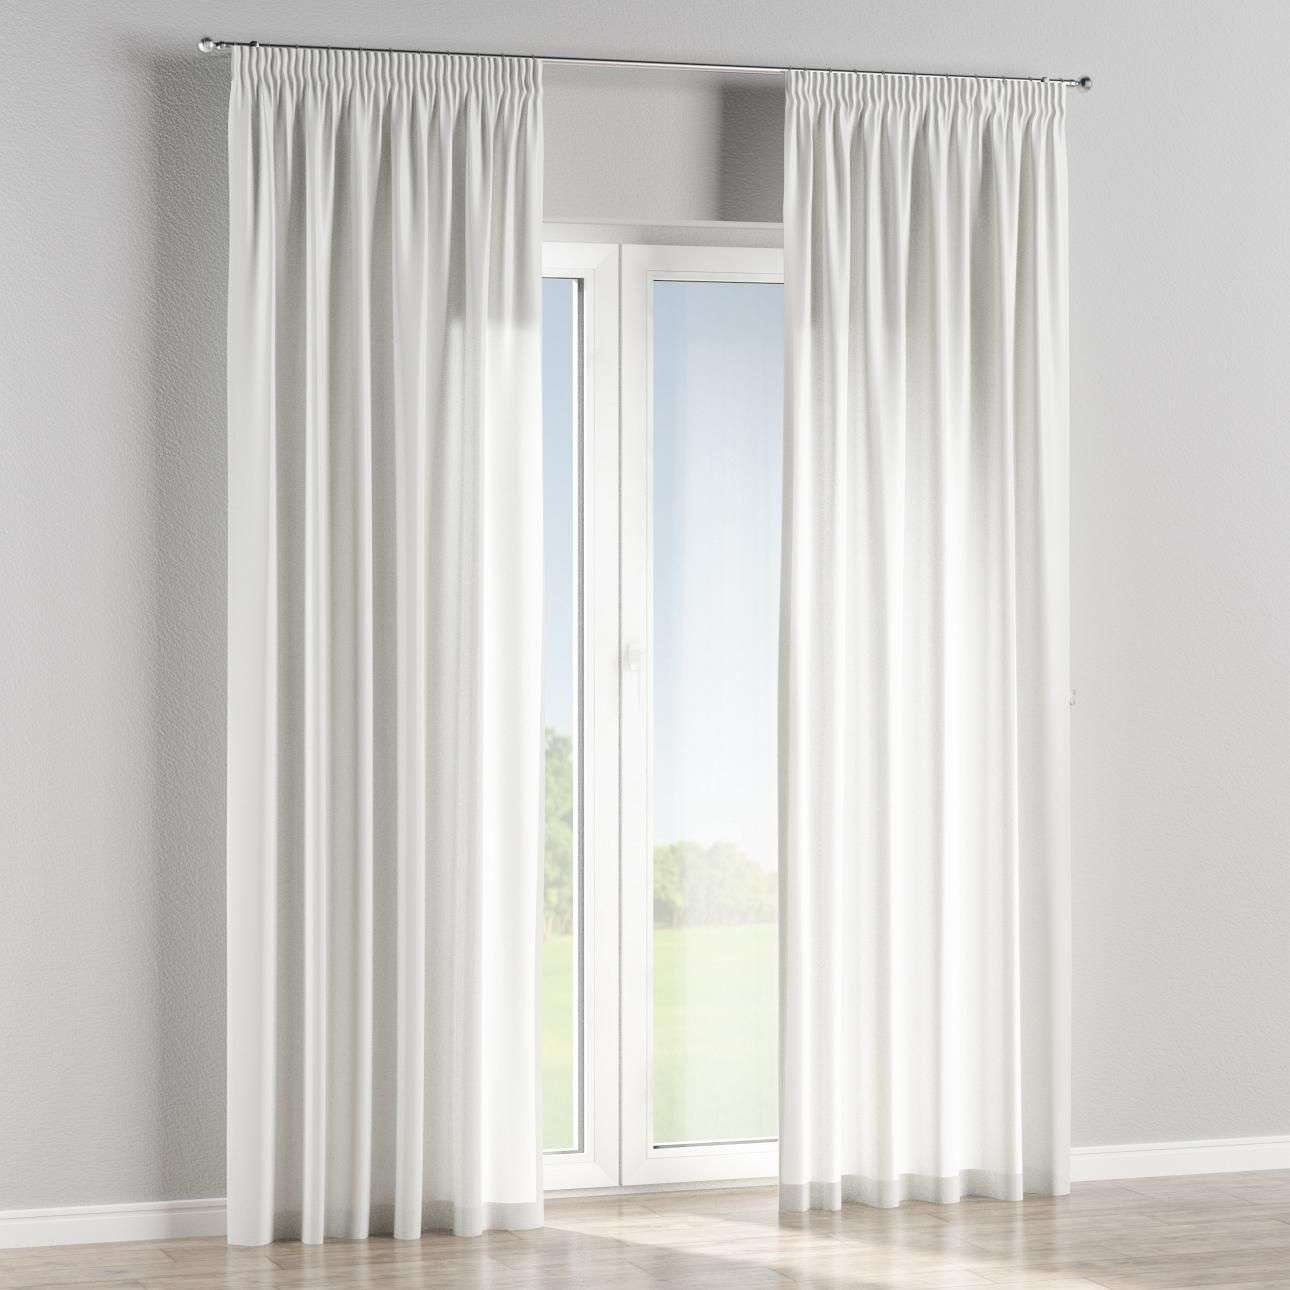 Pencil pleat lined curtains in collection Linen , fabric: 392-09